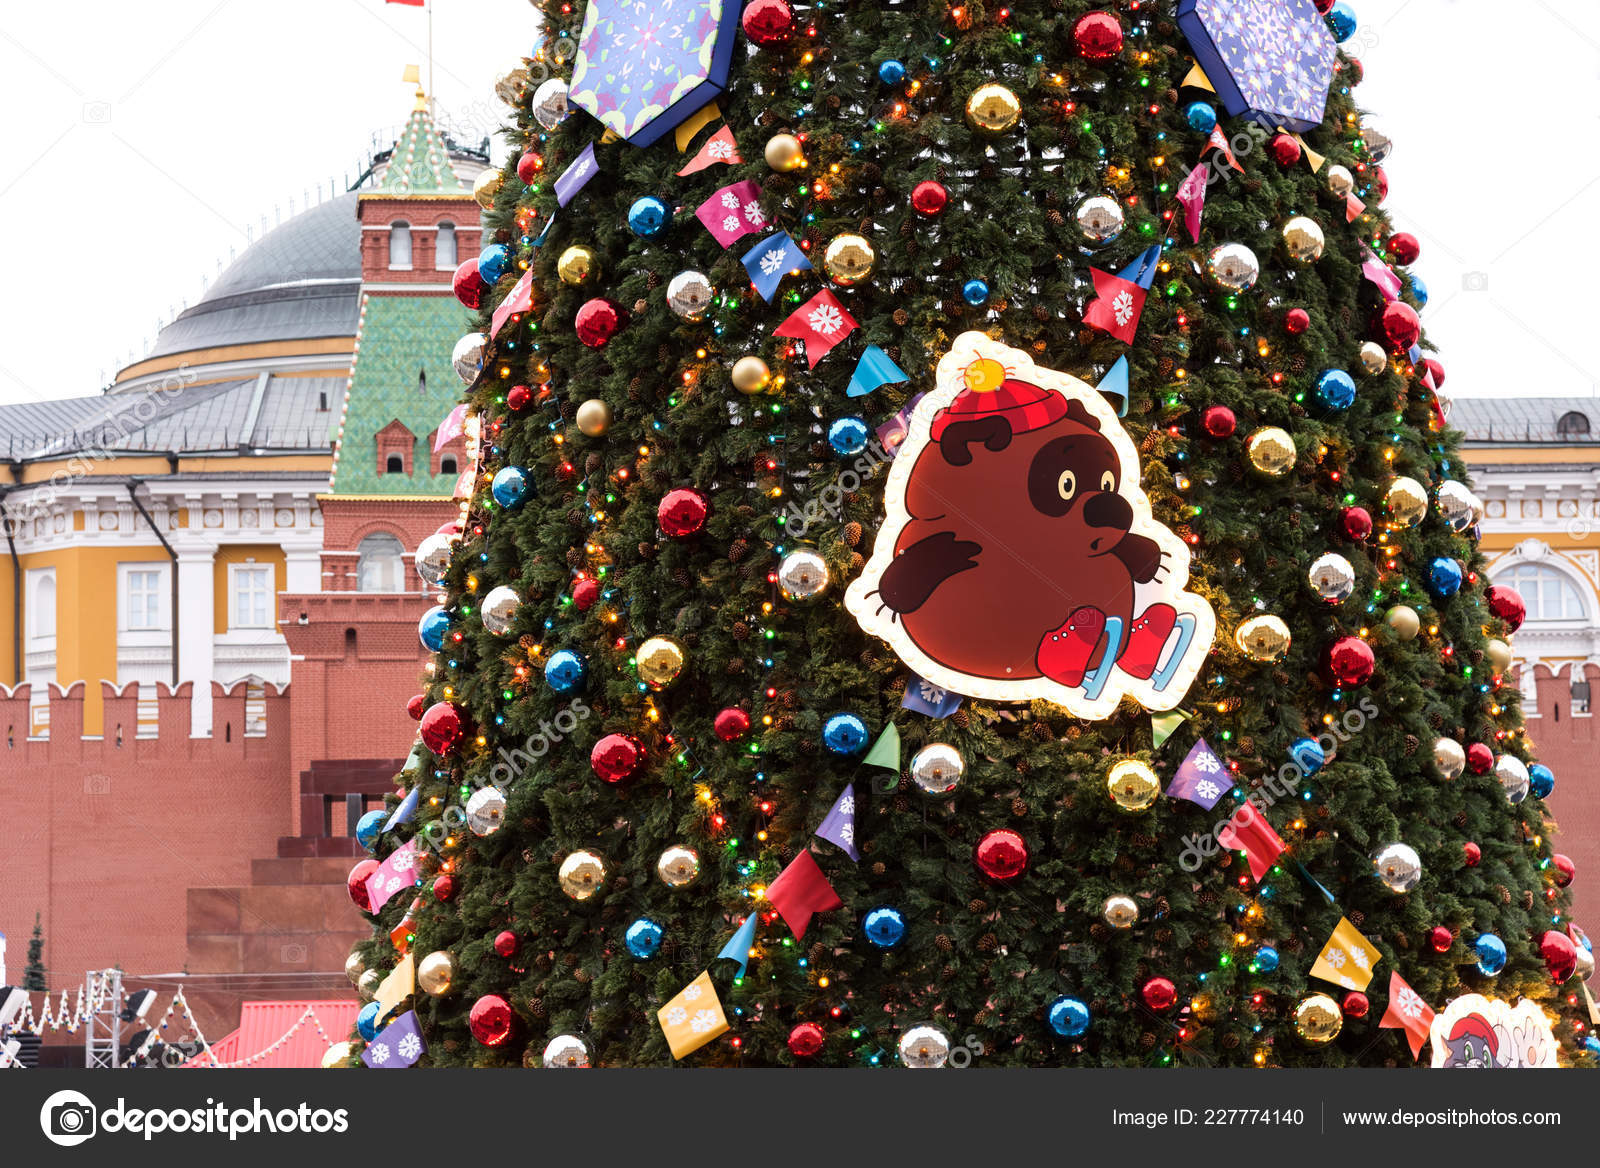 Russia Christmas Ornaments.Moscow Russia November 2018 New Year Christmas Decorations